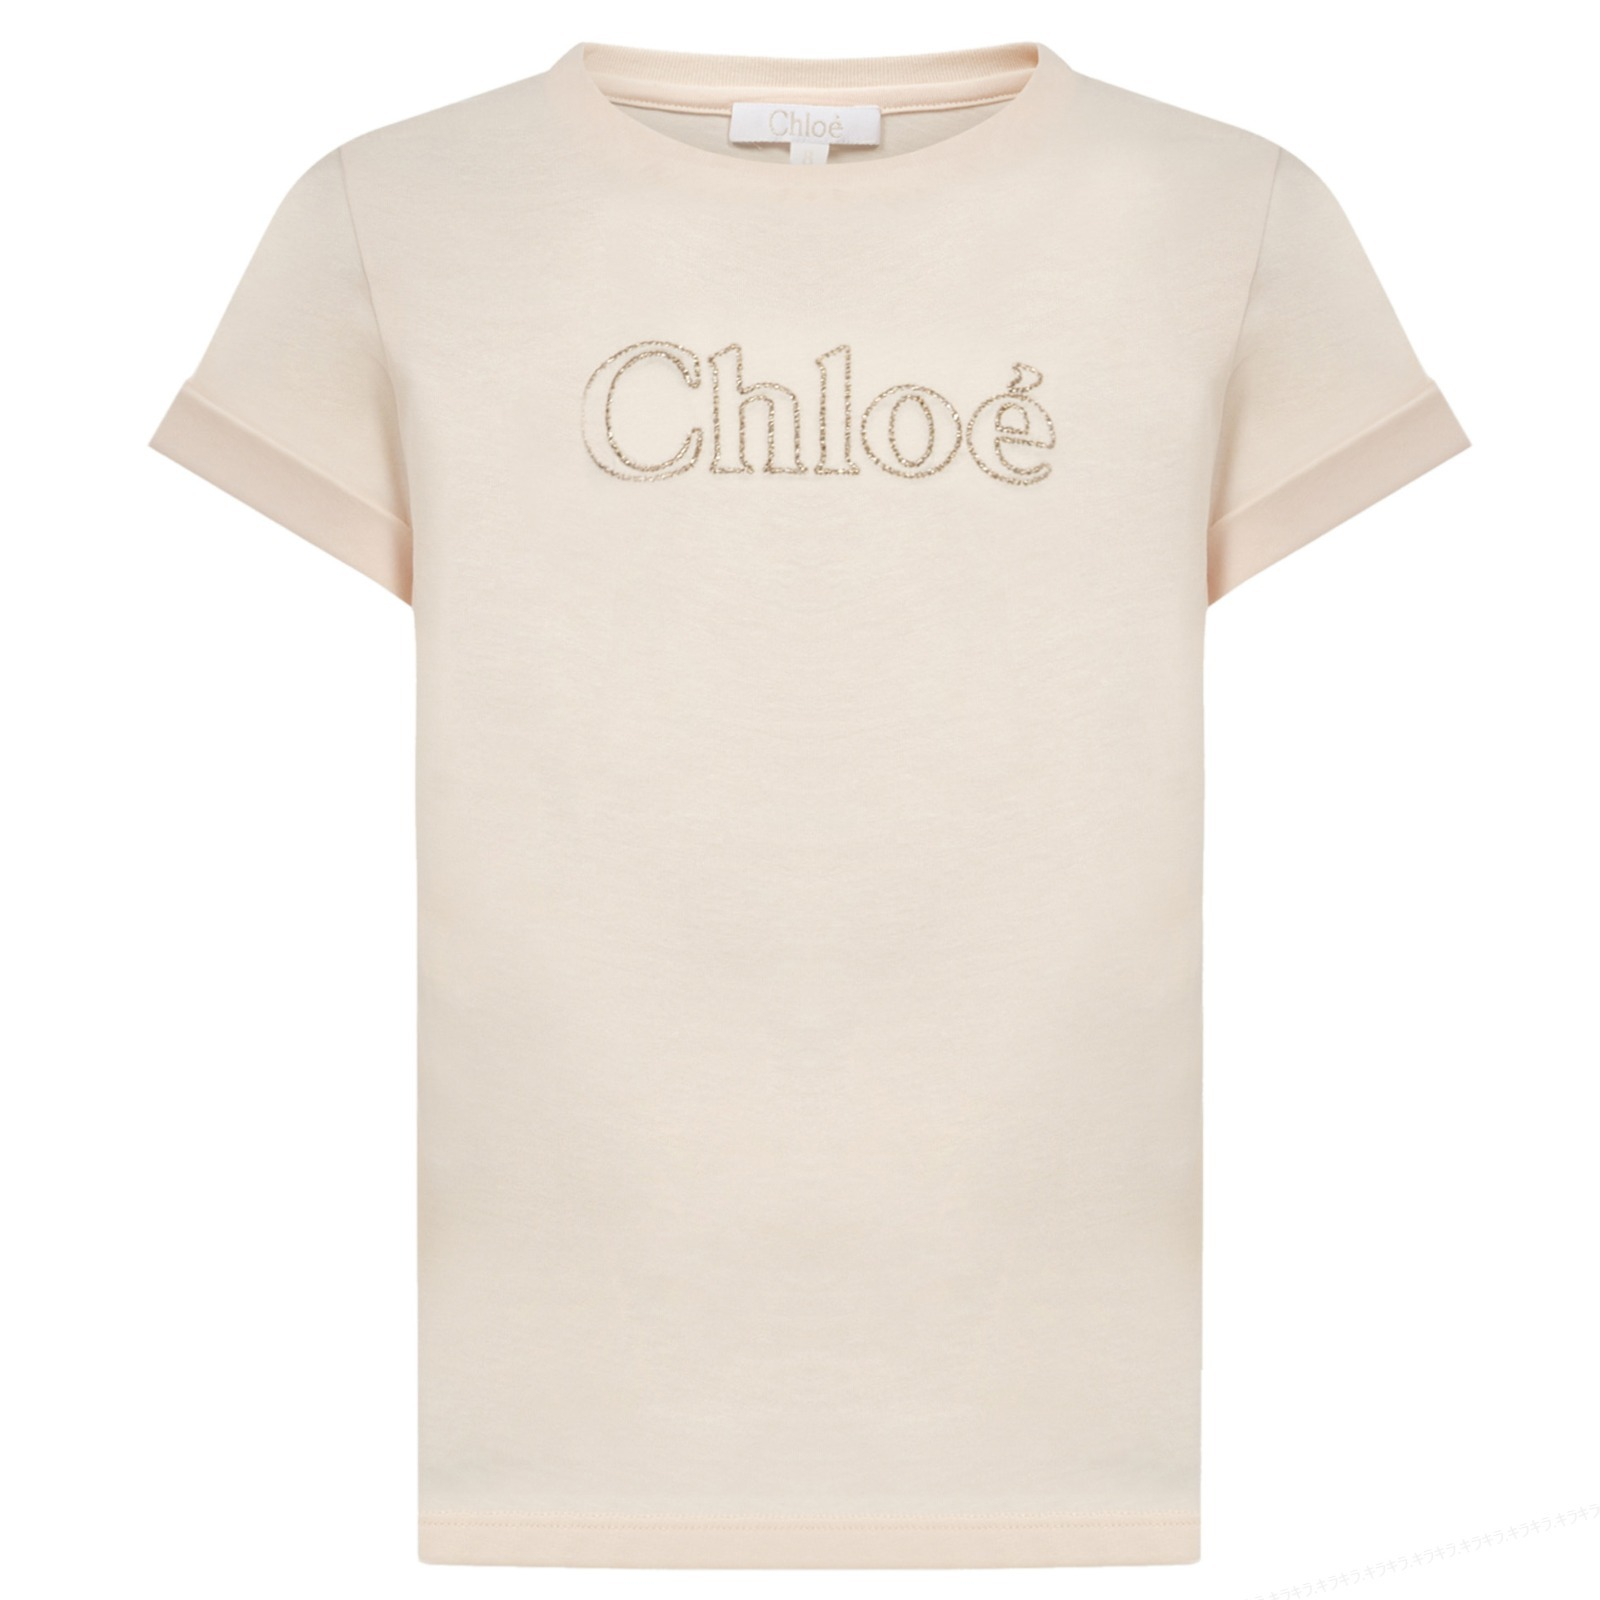 shop stella mccartney chloe